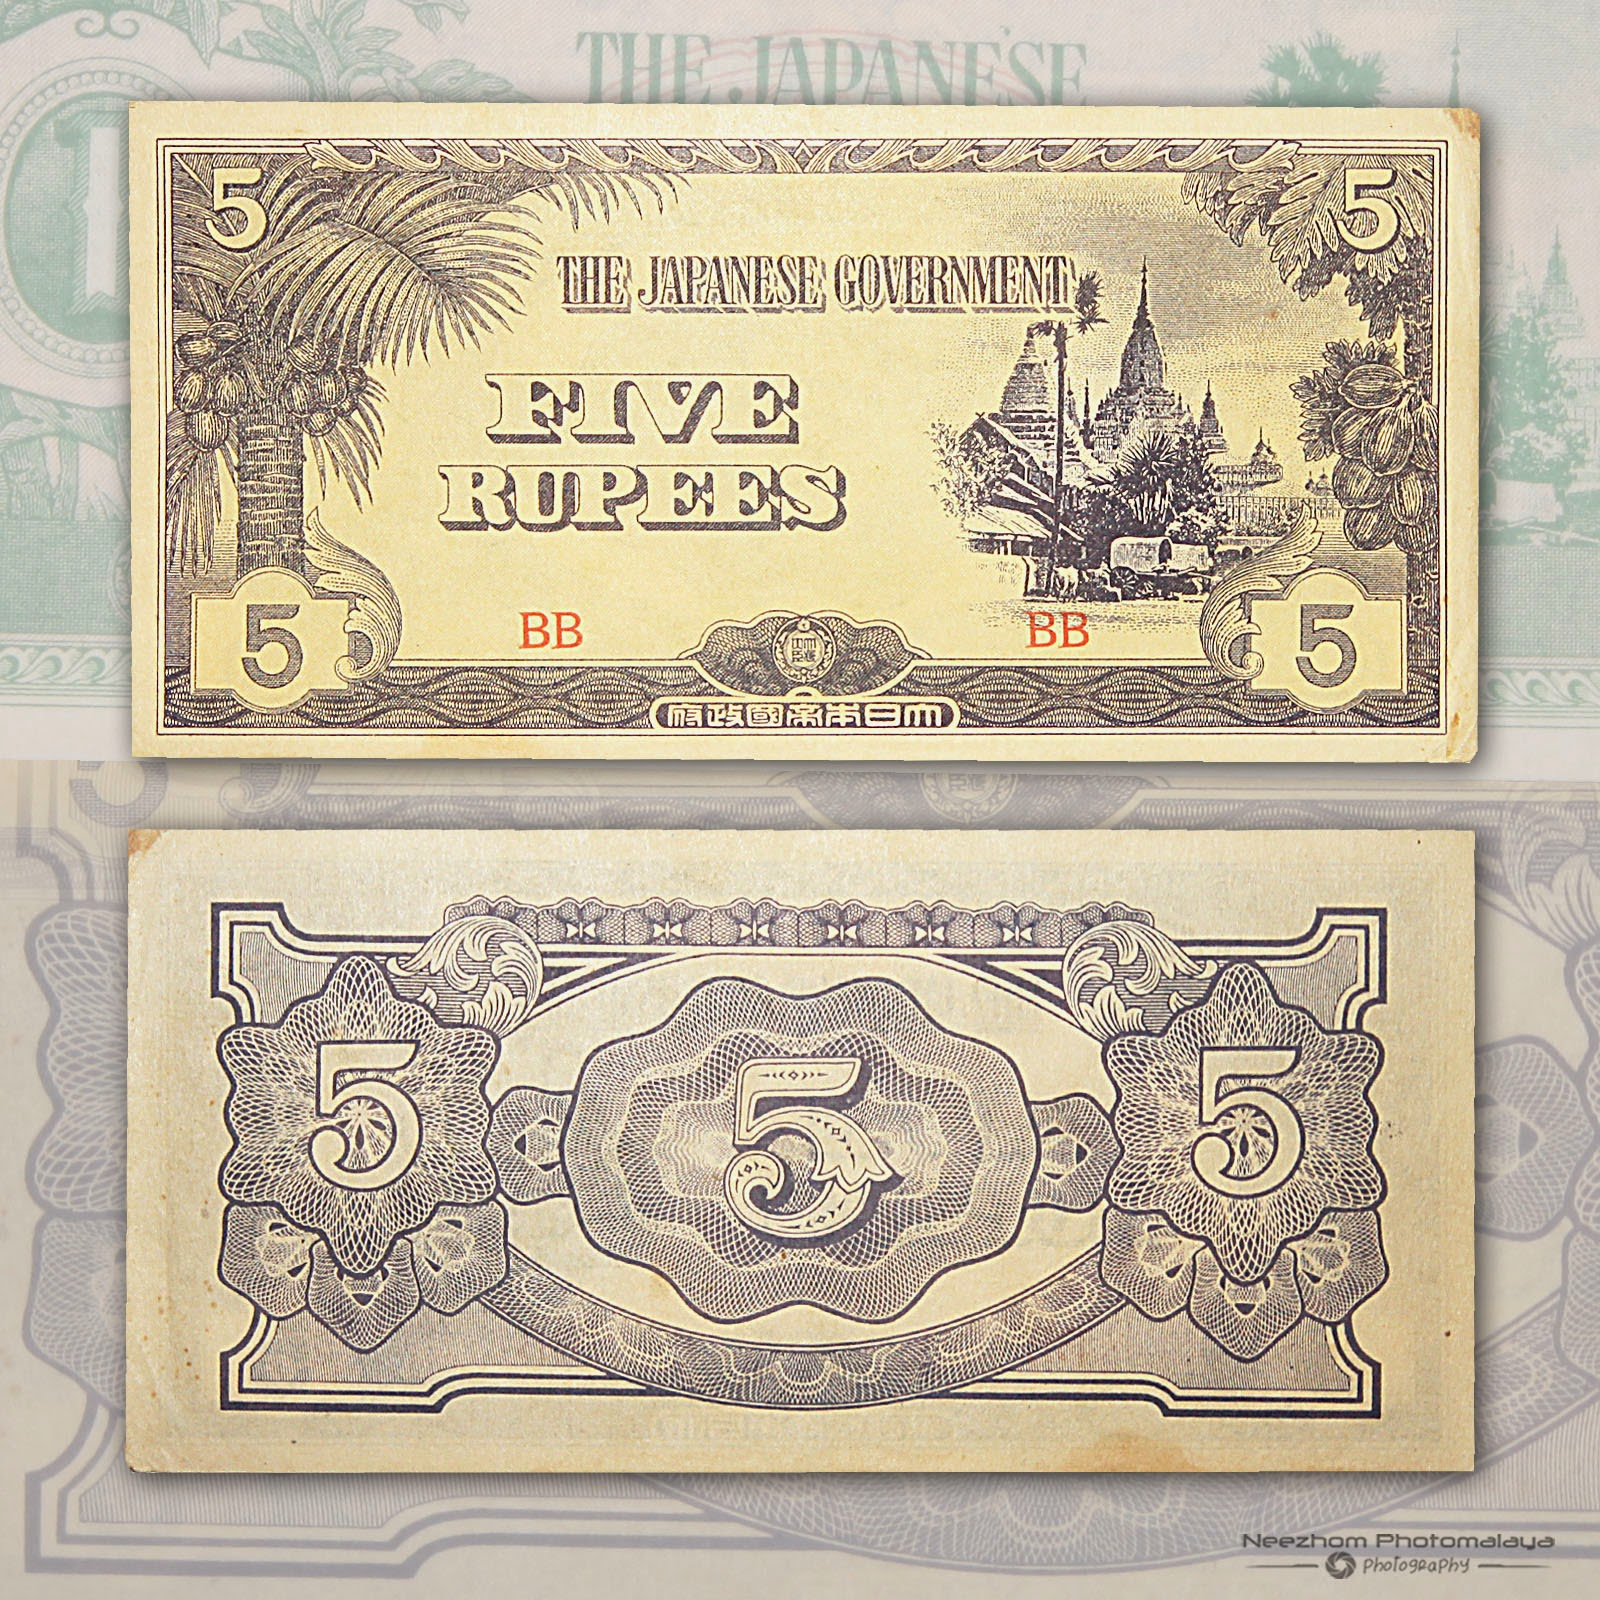 5 Rupee Burma Myanmar paper money 1942 Japanese Occupation